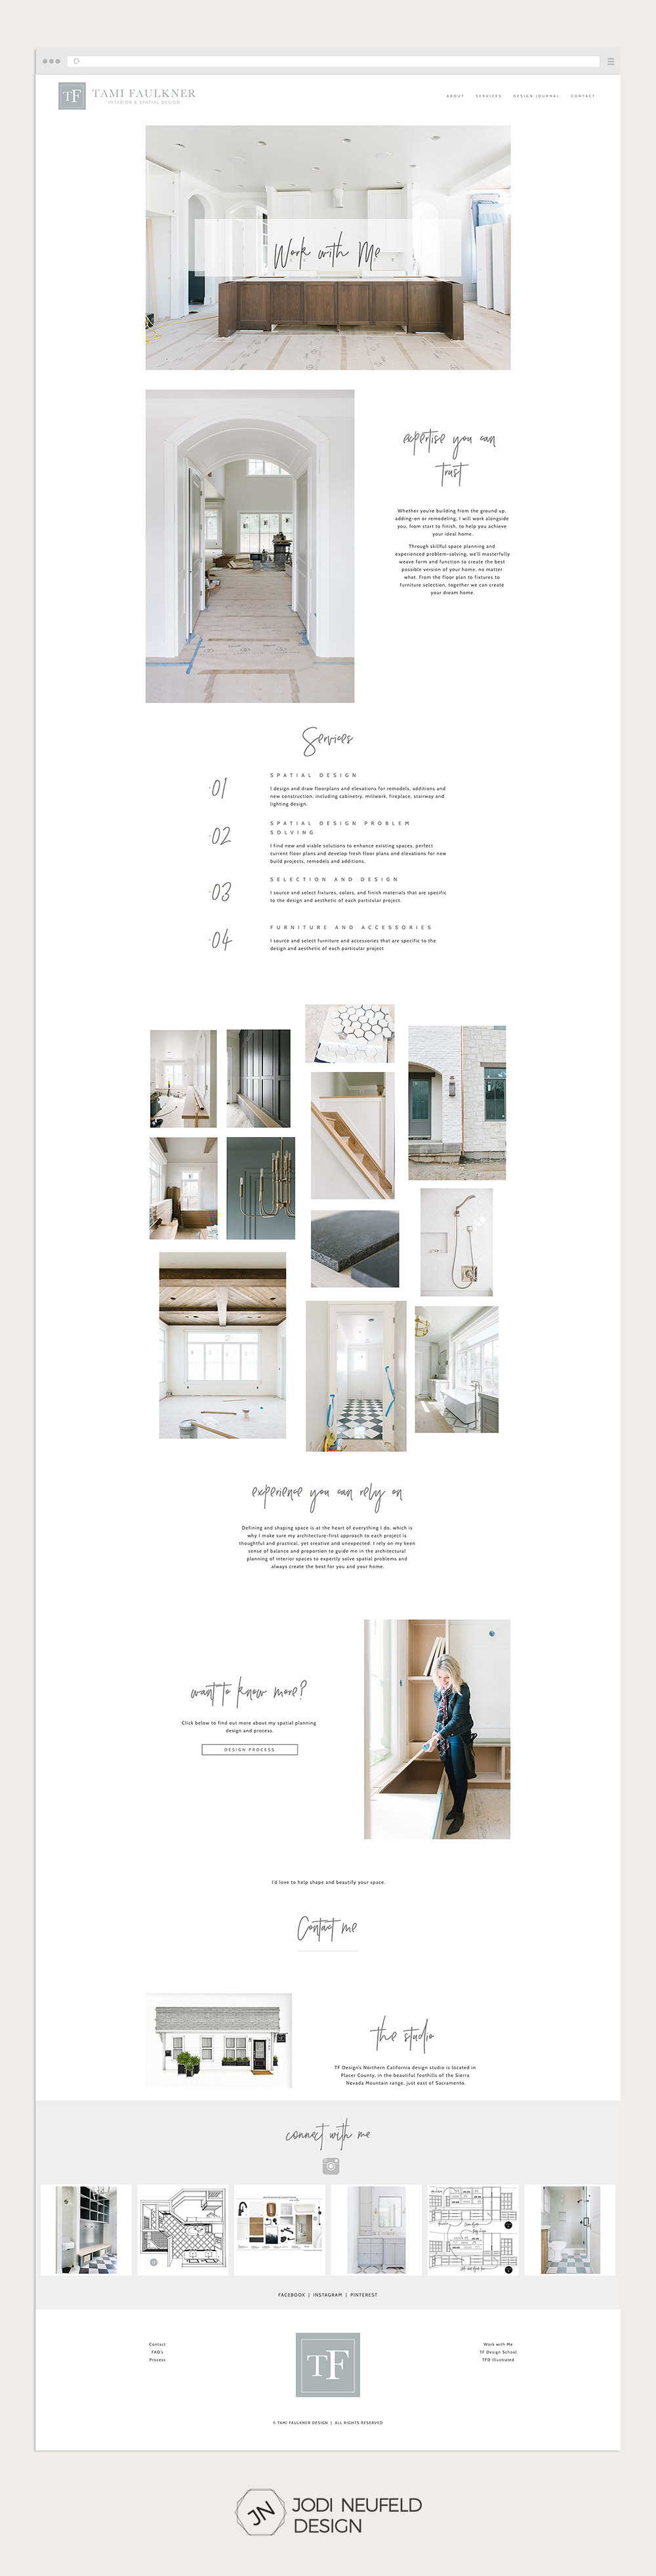 Work with me page for an interior designe#squarespace website design for an interior design by Jodi Neufeld Designr | #squarespace web design by Jodi Neufeld Design